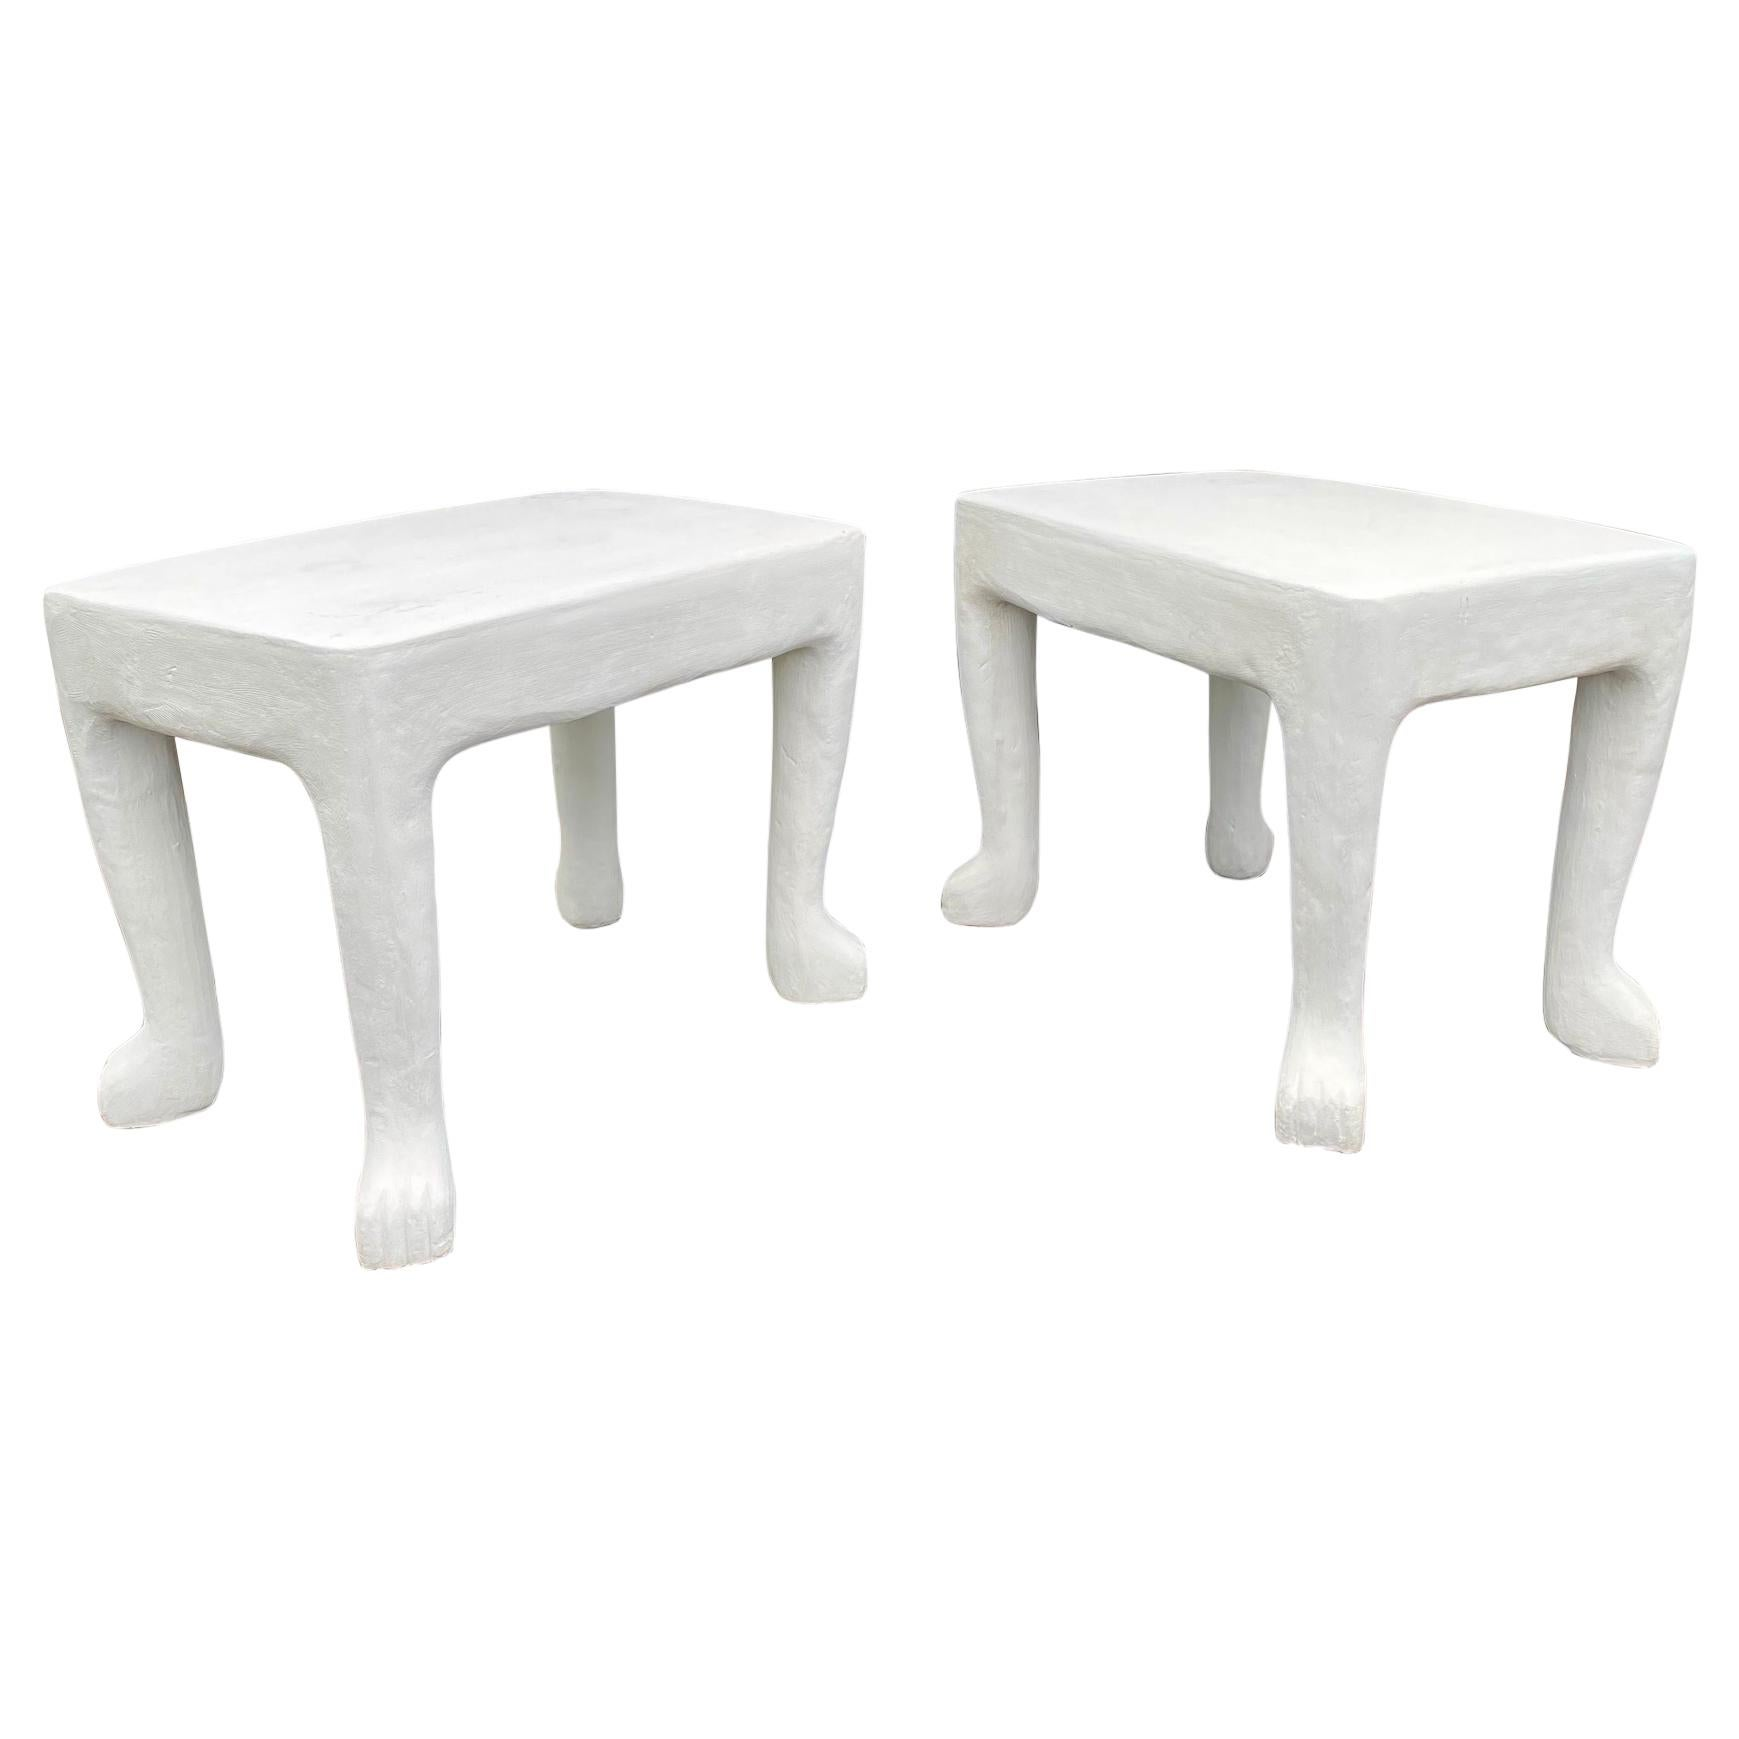 Sculptural John Dickinson Footed Side End Coffee Tables, Plaster White Pair